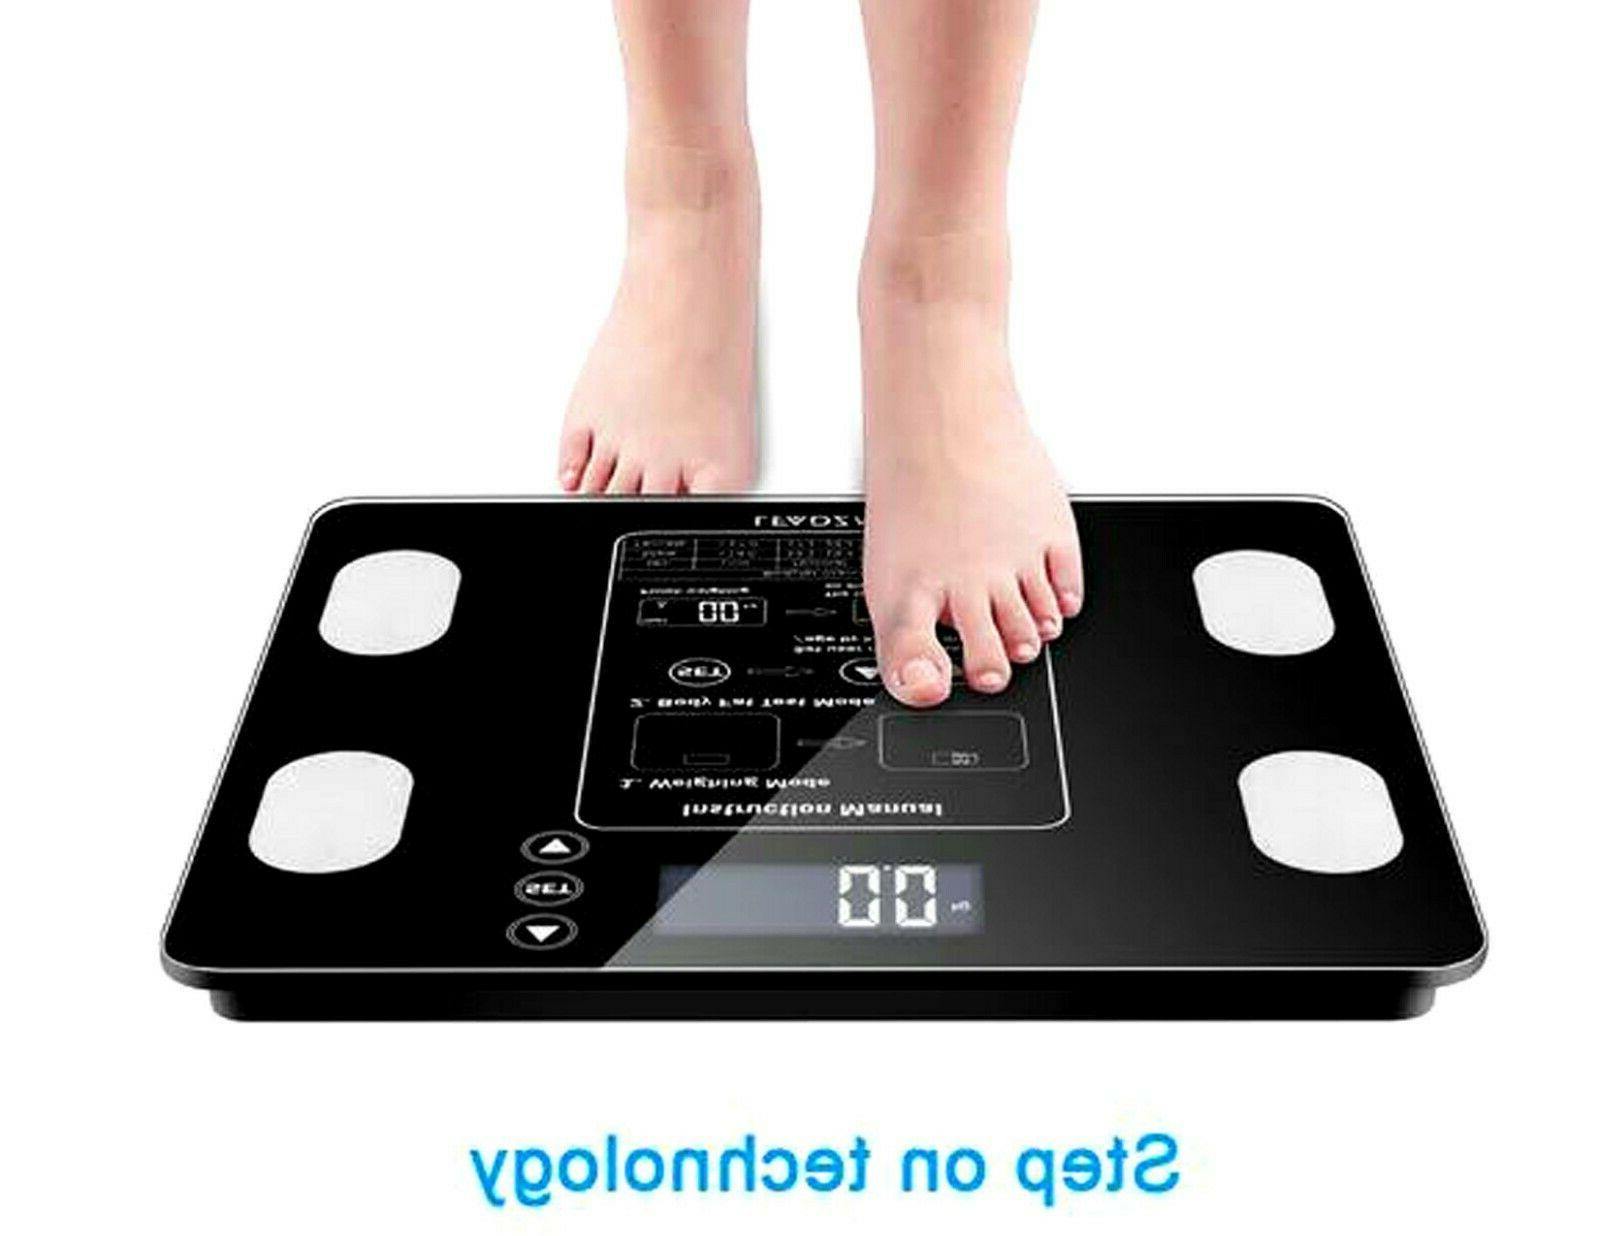 digital body fat scale bmi water muscle